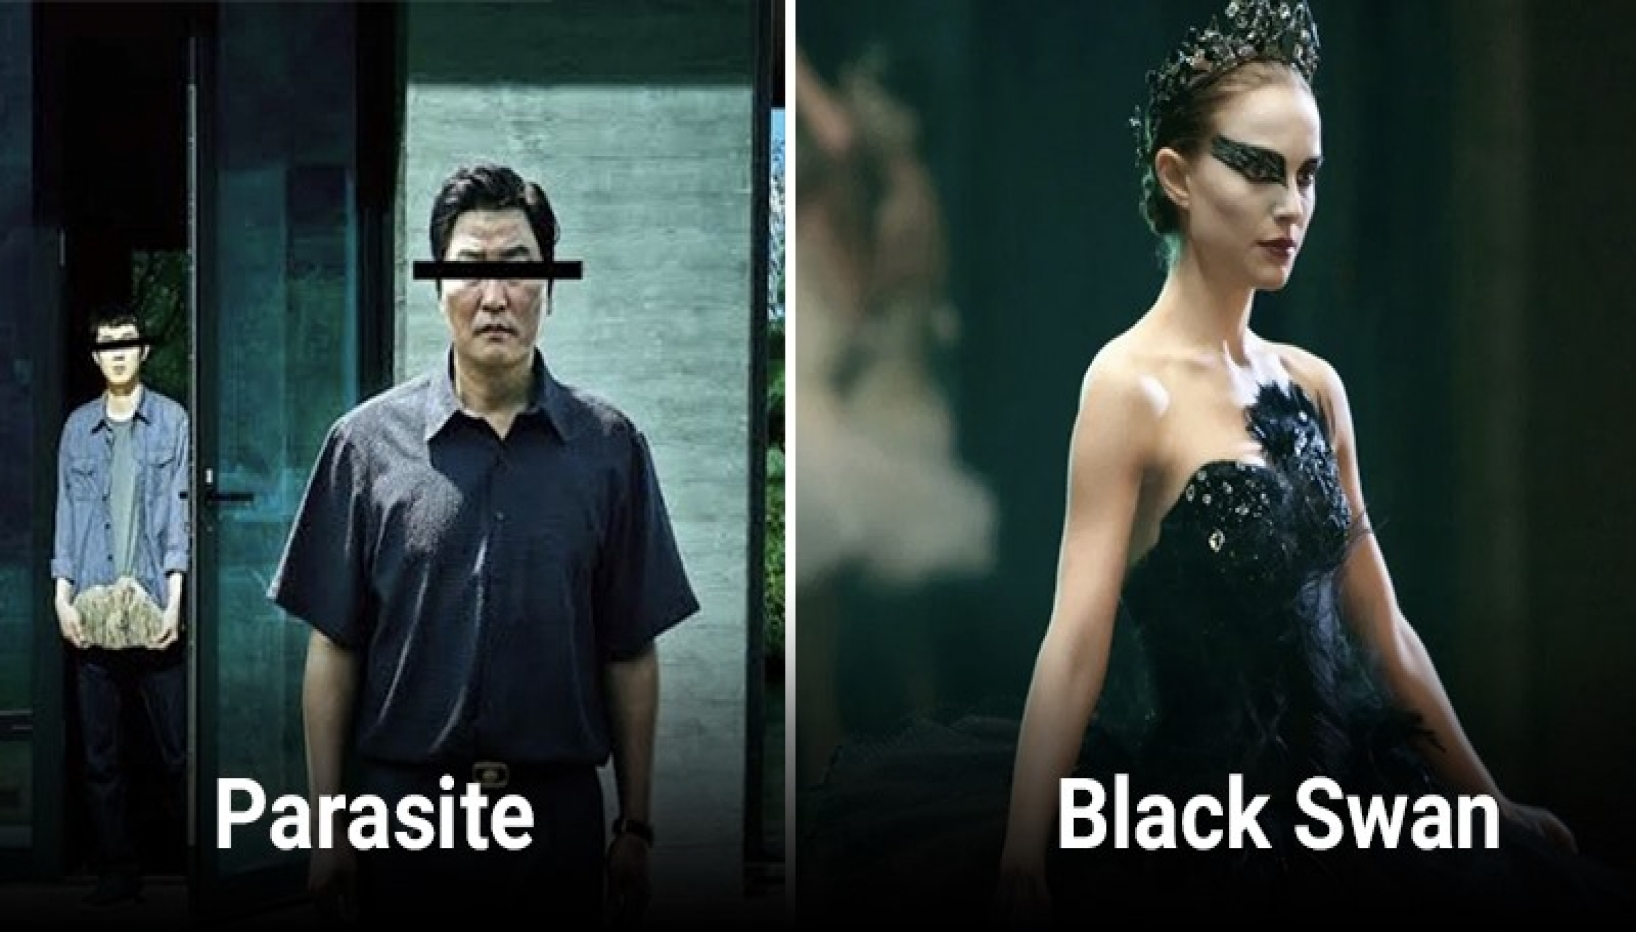 posters for parasite and black swan, both psychological thrillers